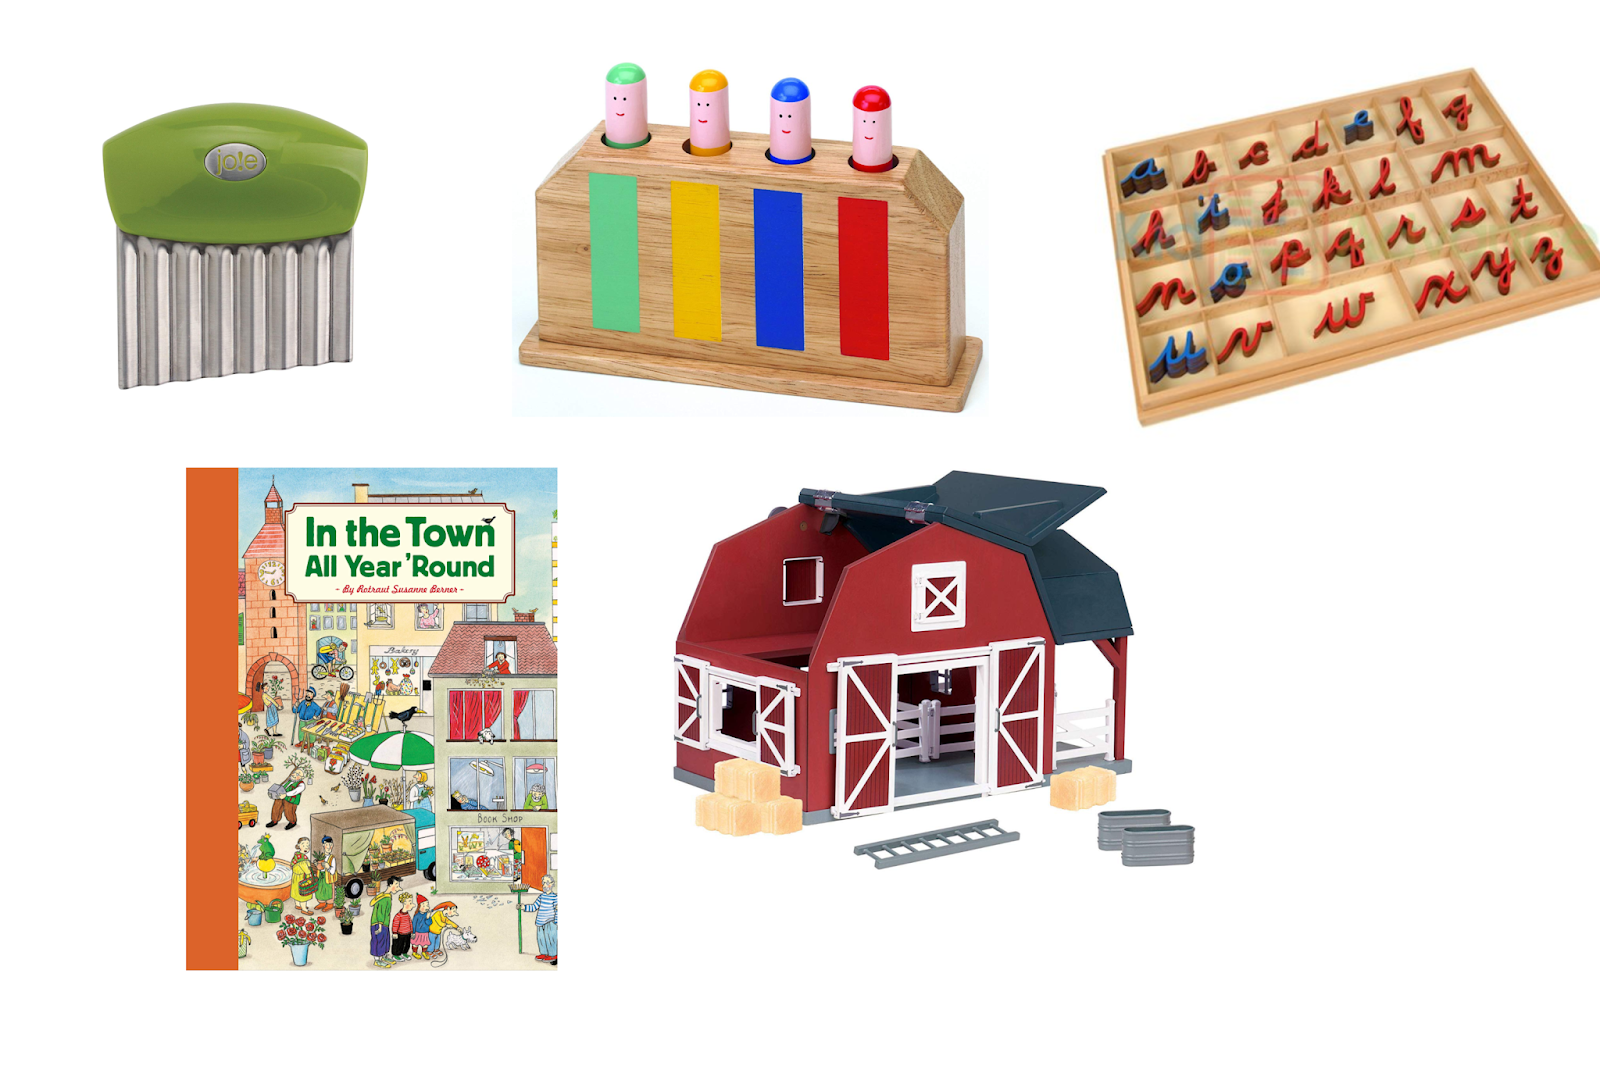 Top 5 Montessori gifts for children from birth to age 9 - gift ideas for every age and budget